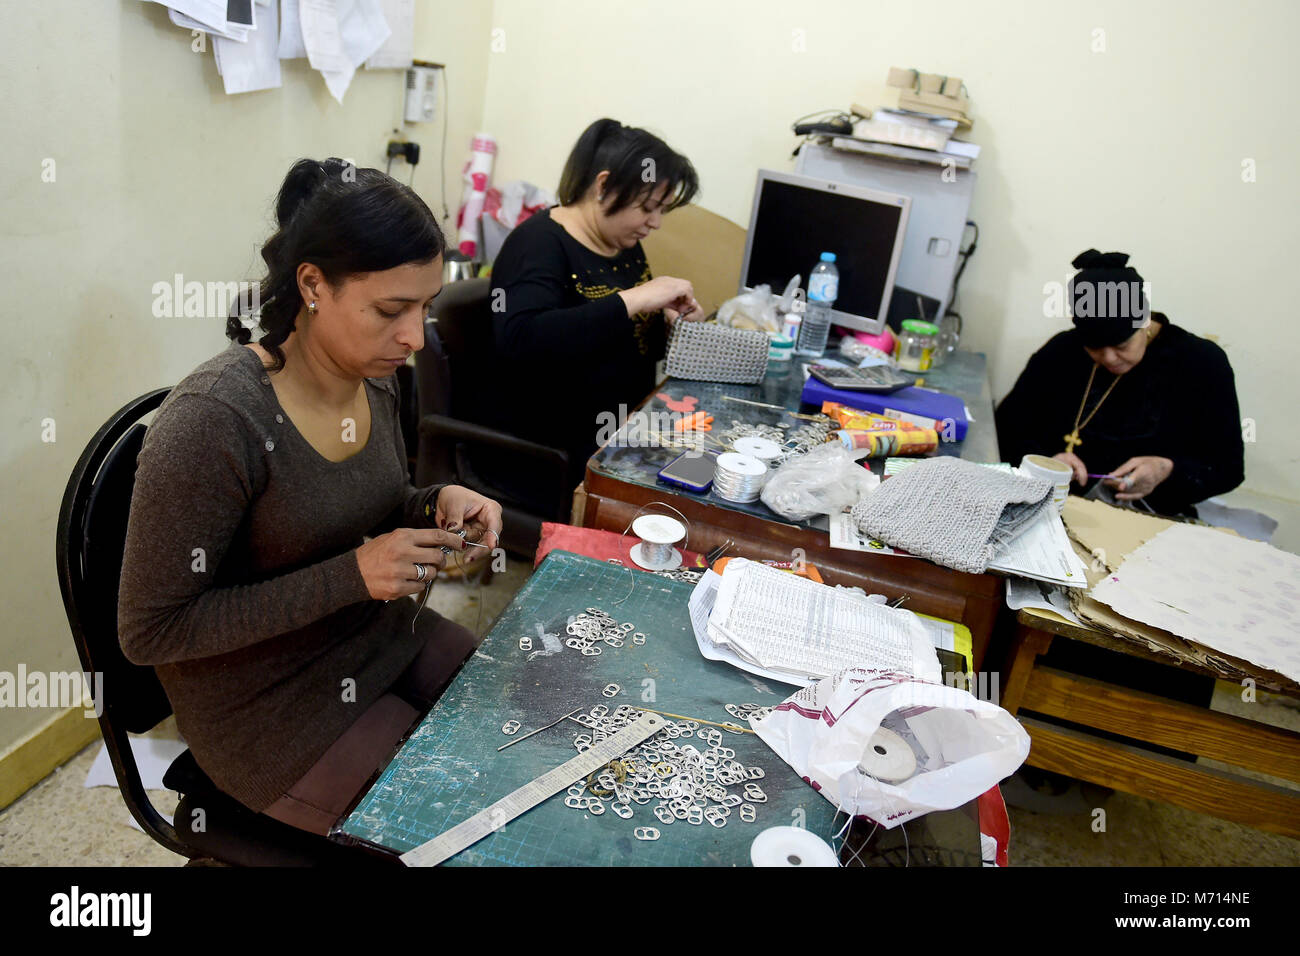 (180307) -- CAIRO, March 7, 2018 (Xinhua) -- Egyptian women make handicrafts from recycled materials at a workshop - Stock Image